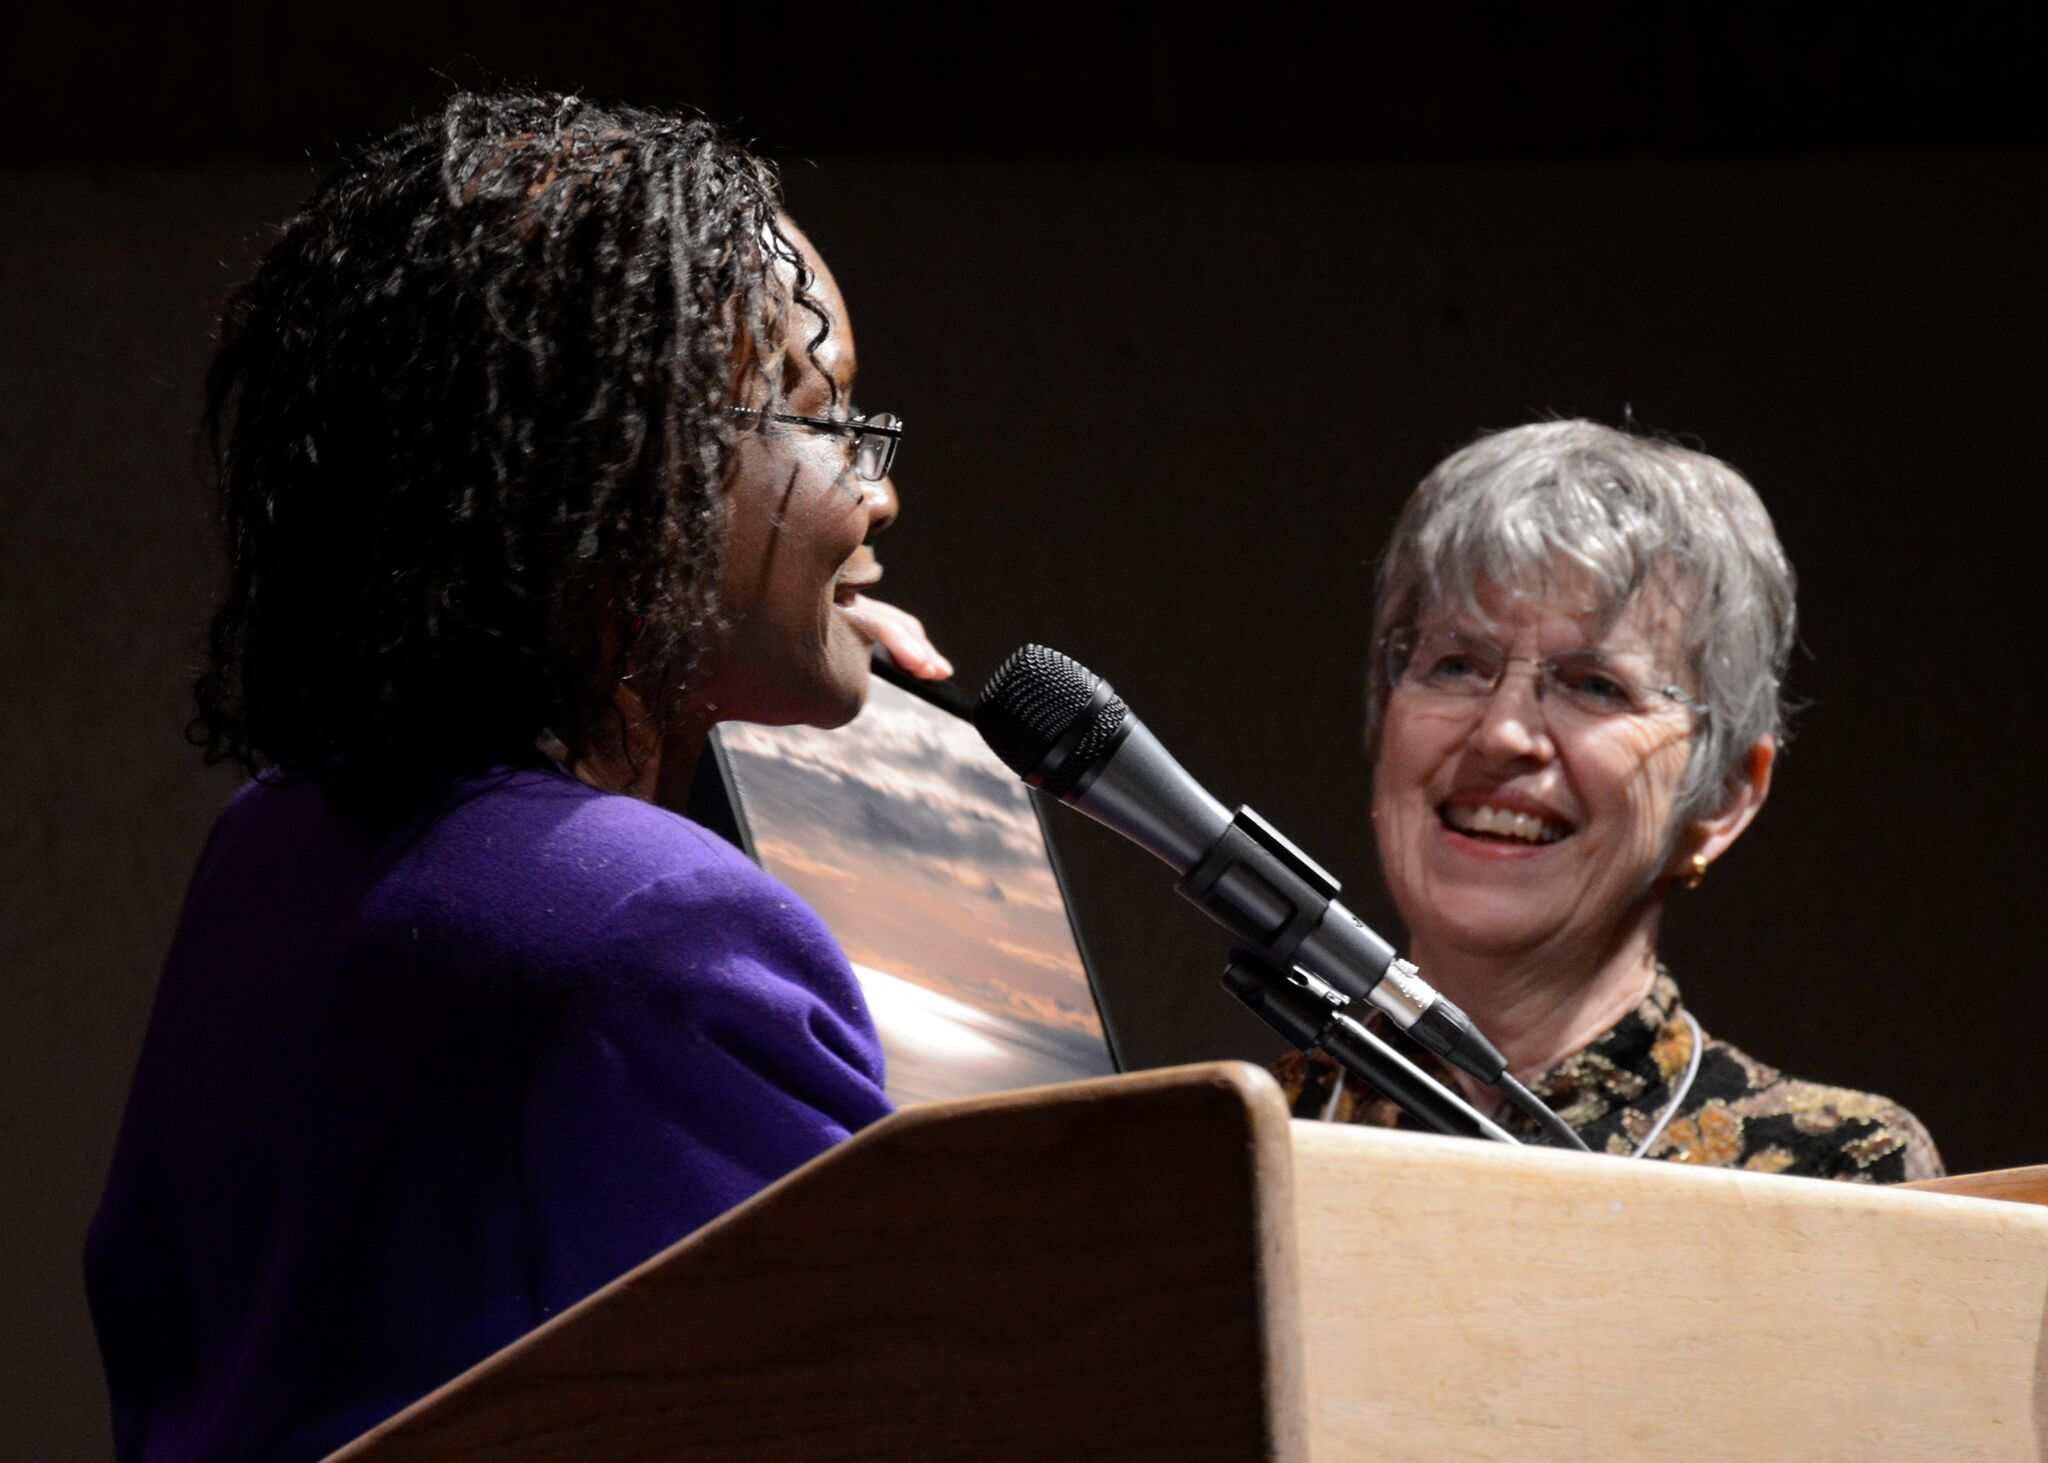 NMPW President Sherri Burr (l) presents outgoing NMPW president Loretta Hall with award